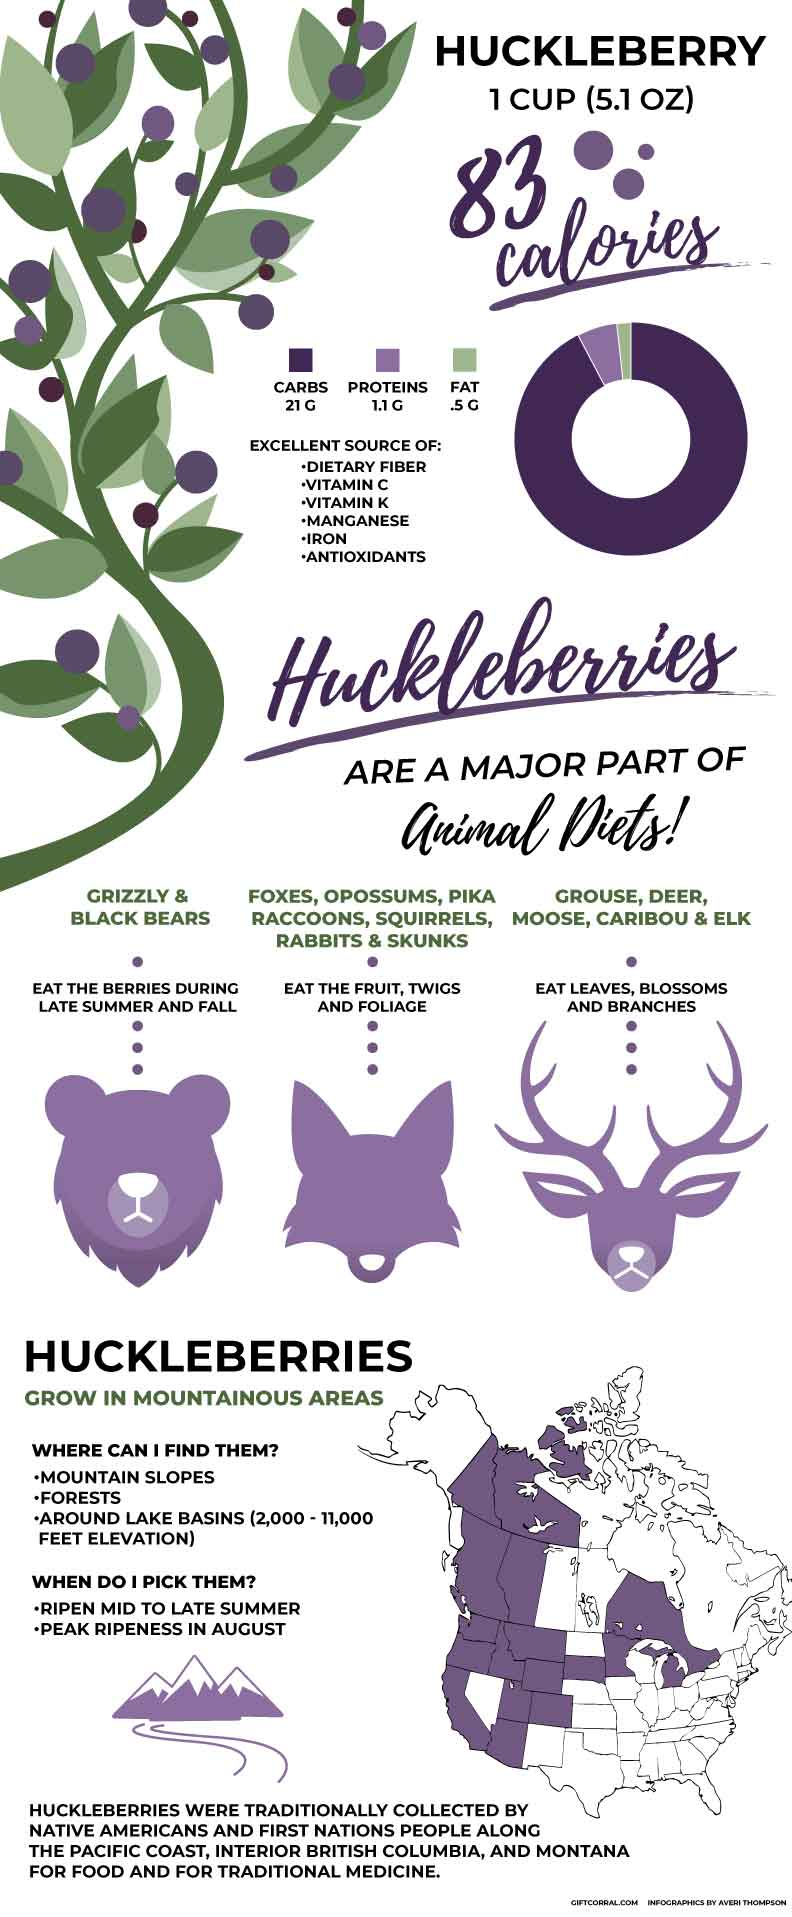 Huckleberry infographic by Montana Gift Corral